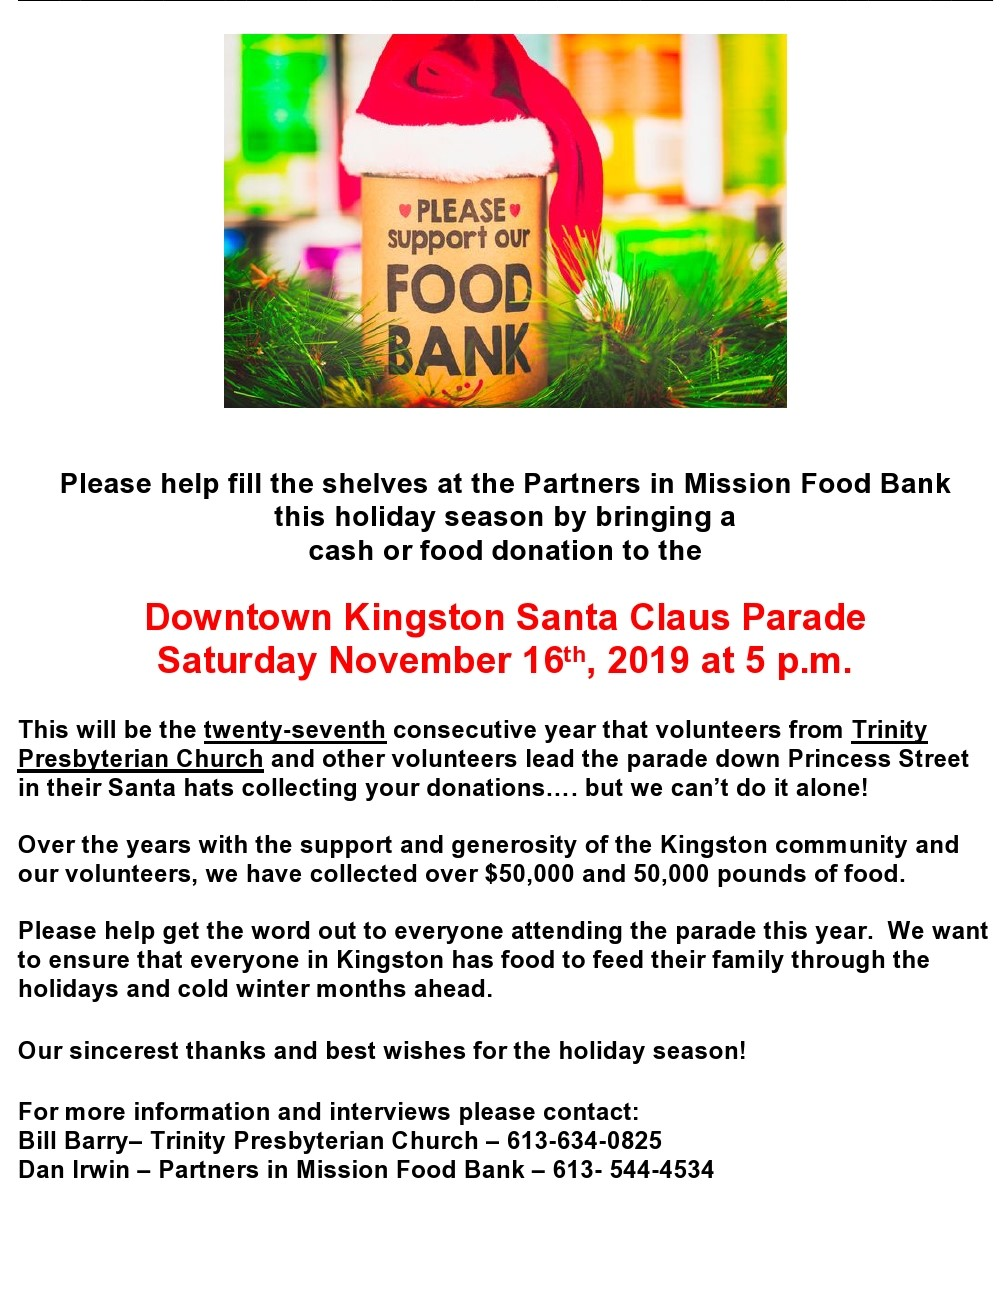 27th Annual Santa Claus Parade